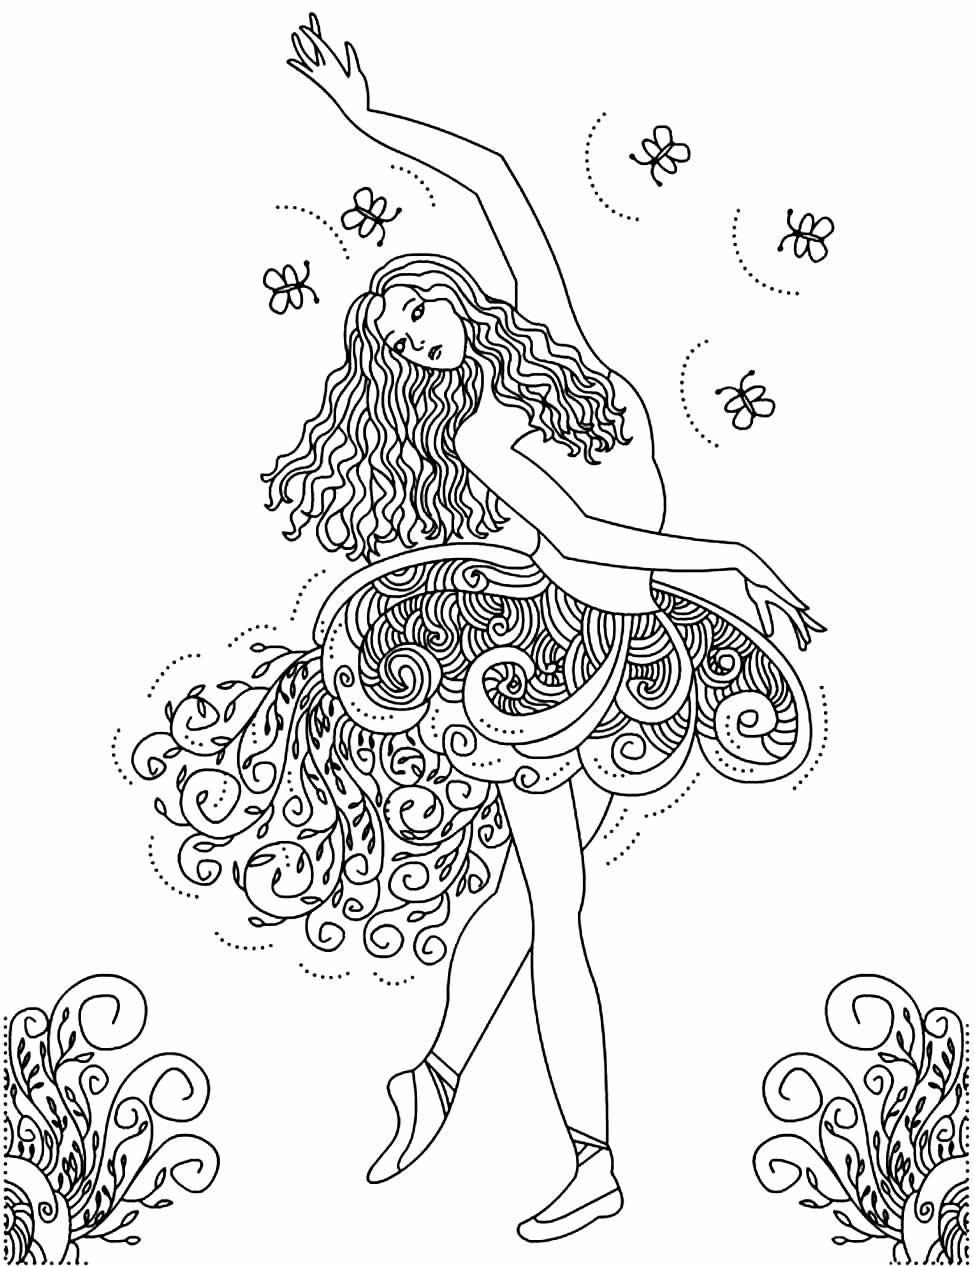 Ballerina drawing for coloring and painting